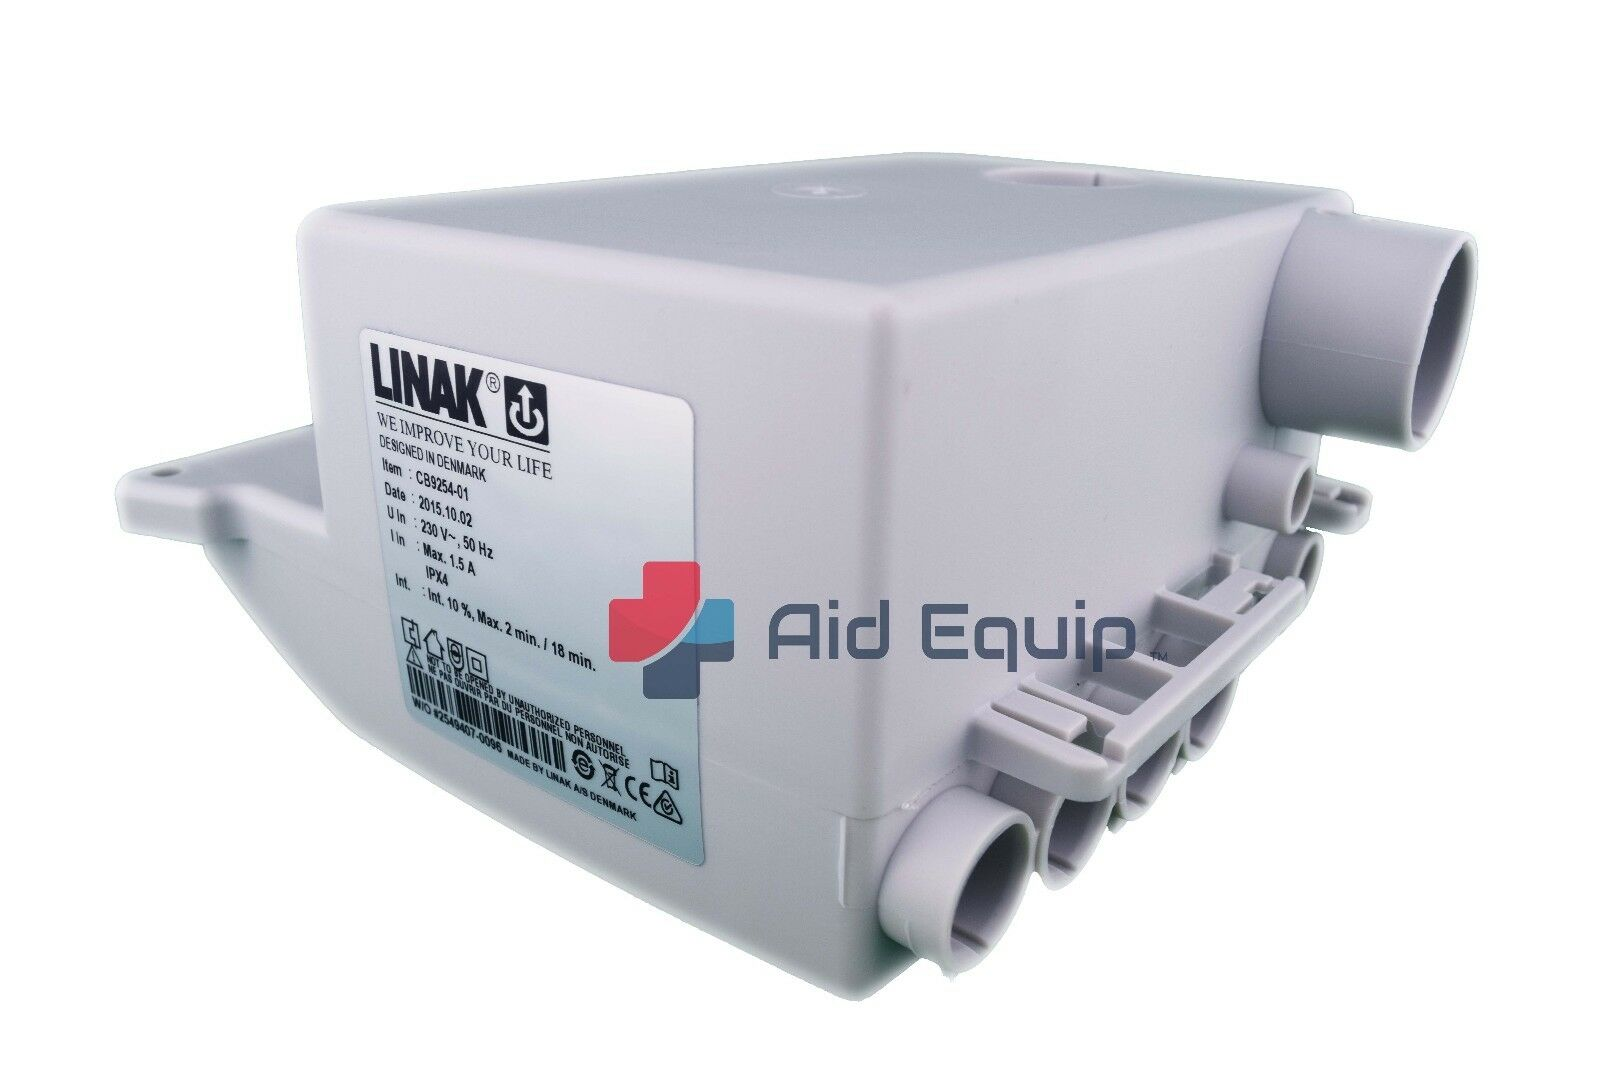 Adjustable Electric Hospital Bed Control Box Cb9 Linak 31900 Linear Actuator Wiring Diagram 1 Of 3 See More